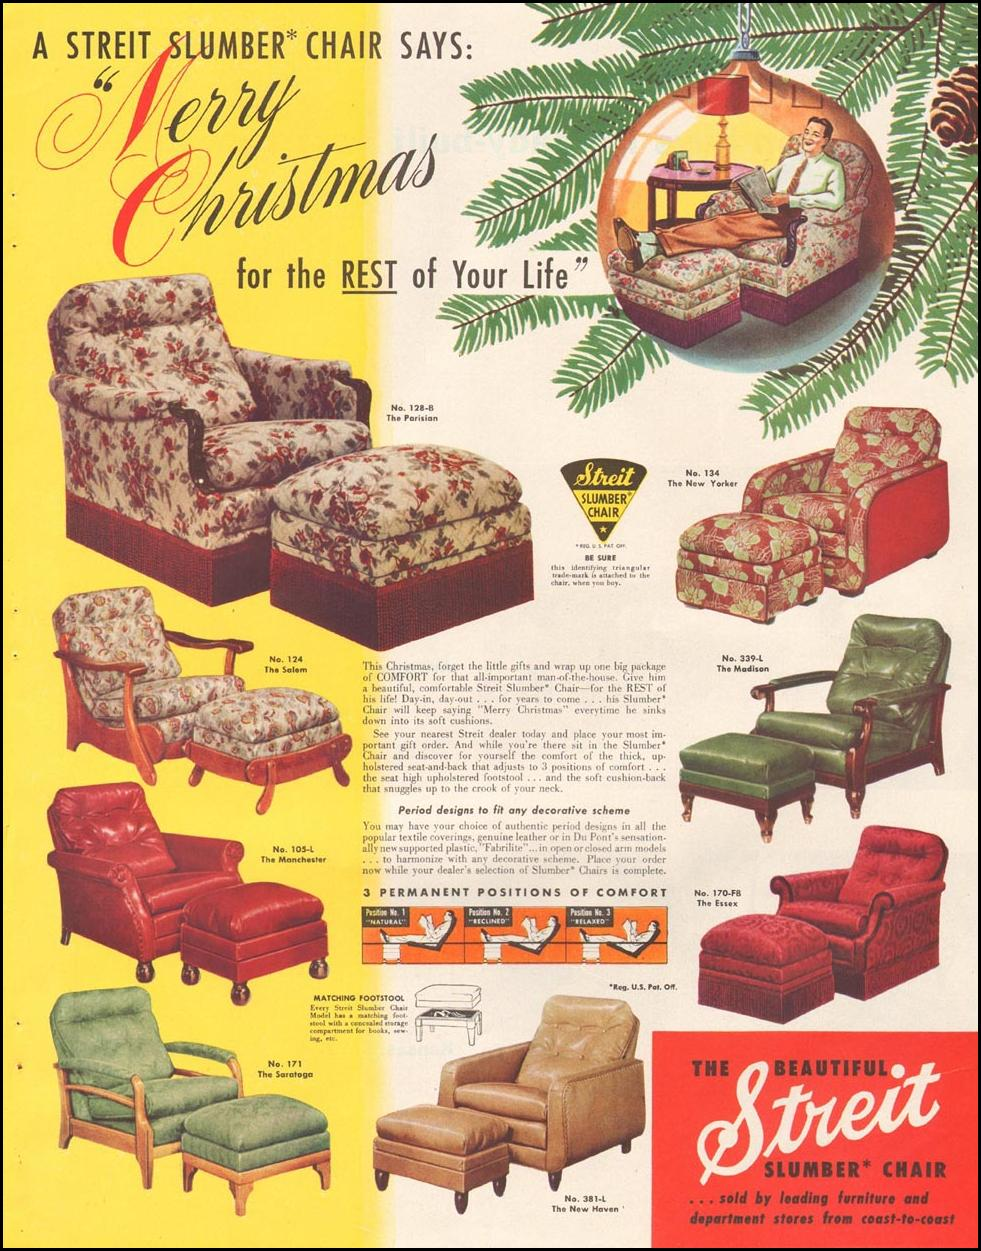 STREIT SLUMBER CHAIR LADIES' HOME JOURNAL 11/01/1950 p. 123